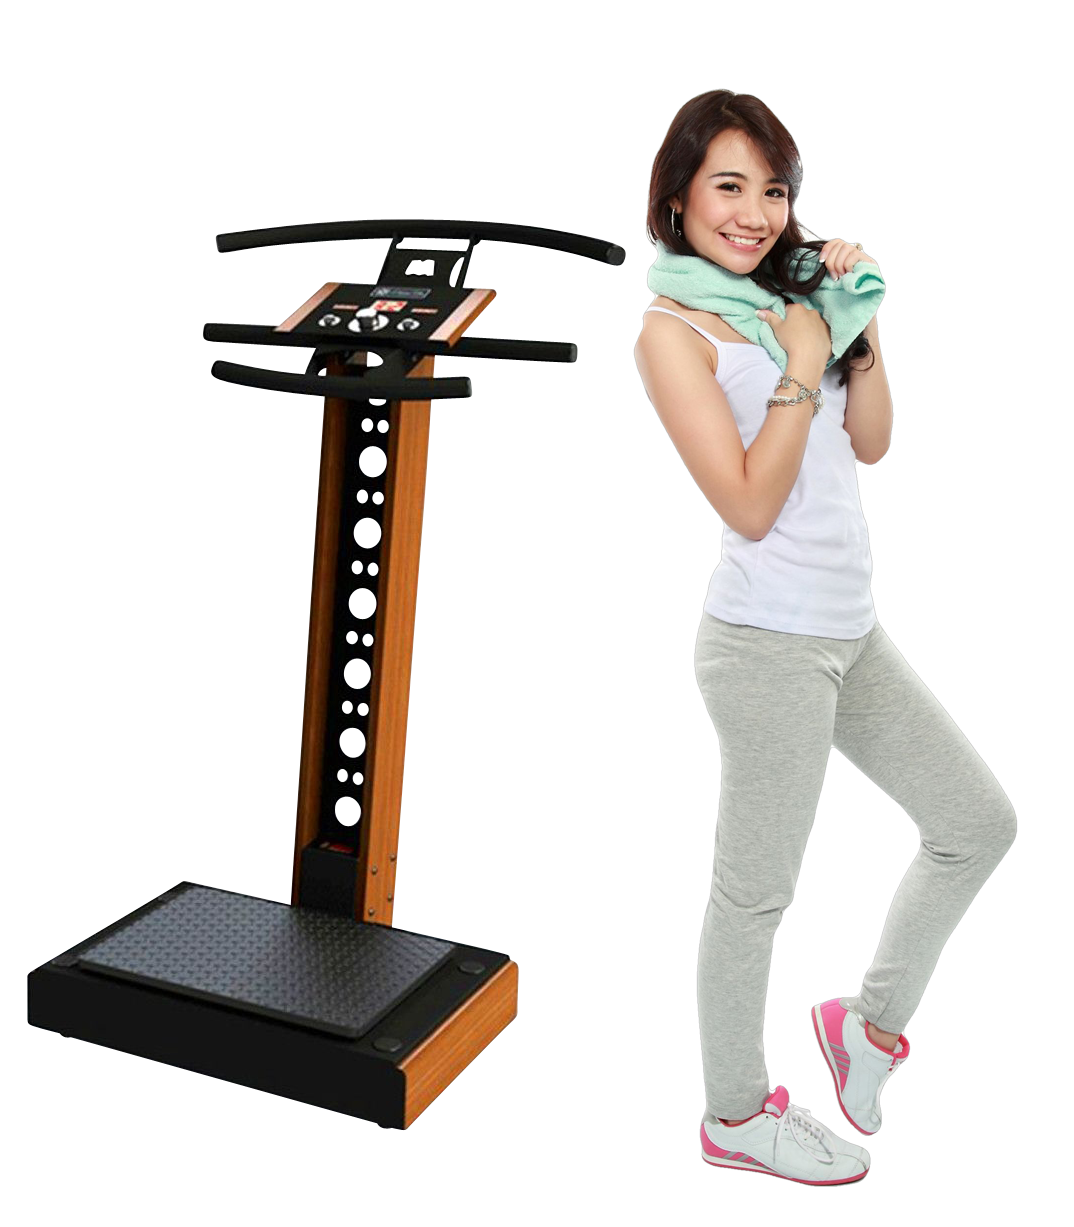 Lifetime Vibe Whole body Vibration Machines (The Original) (BEST Selling WBV Machine - Made in the USA)